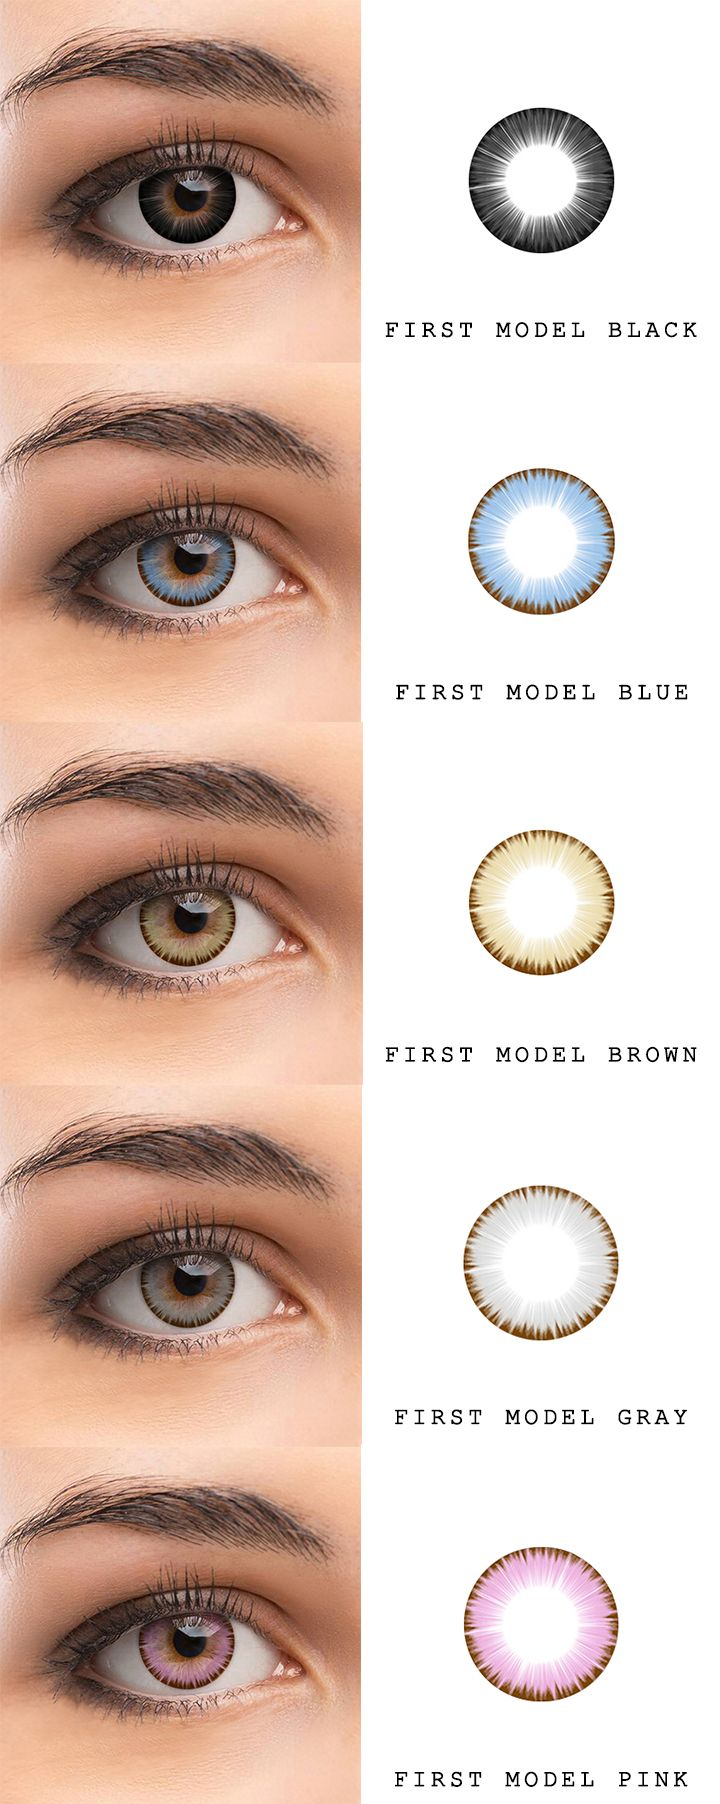 195f83f6838 microeyelenses.com - Colored contact lenses online shop. First Model  series  Black